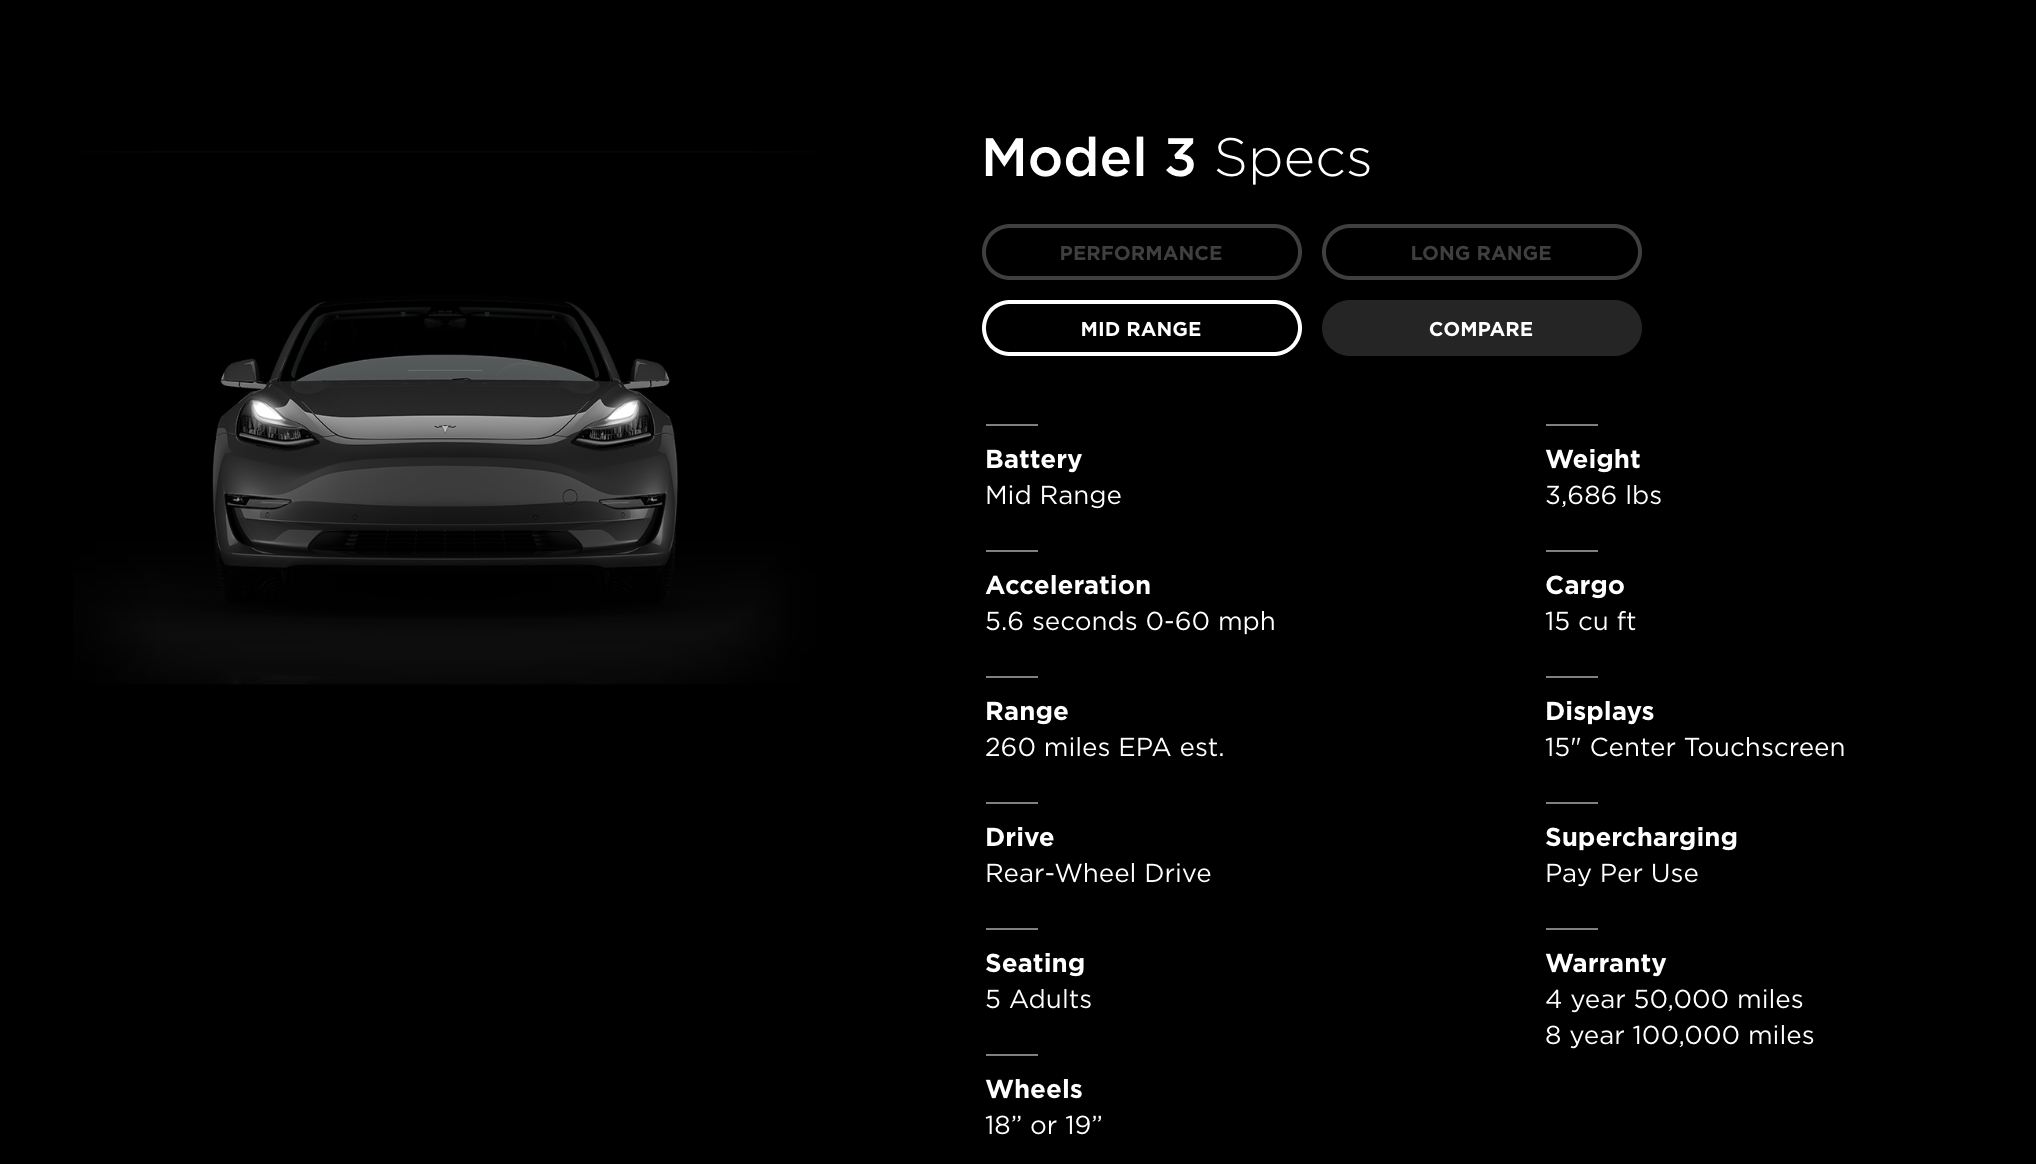 Tesla model 3 mid-range